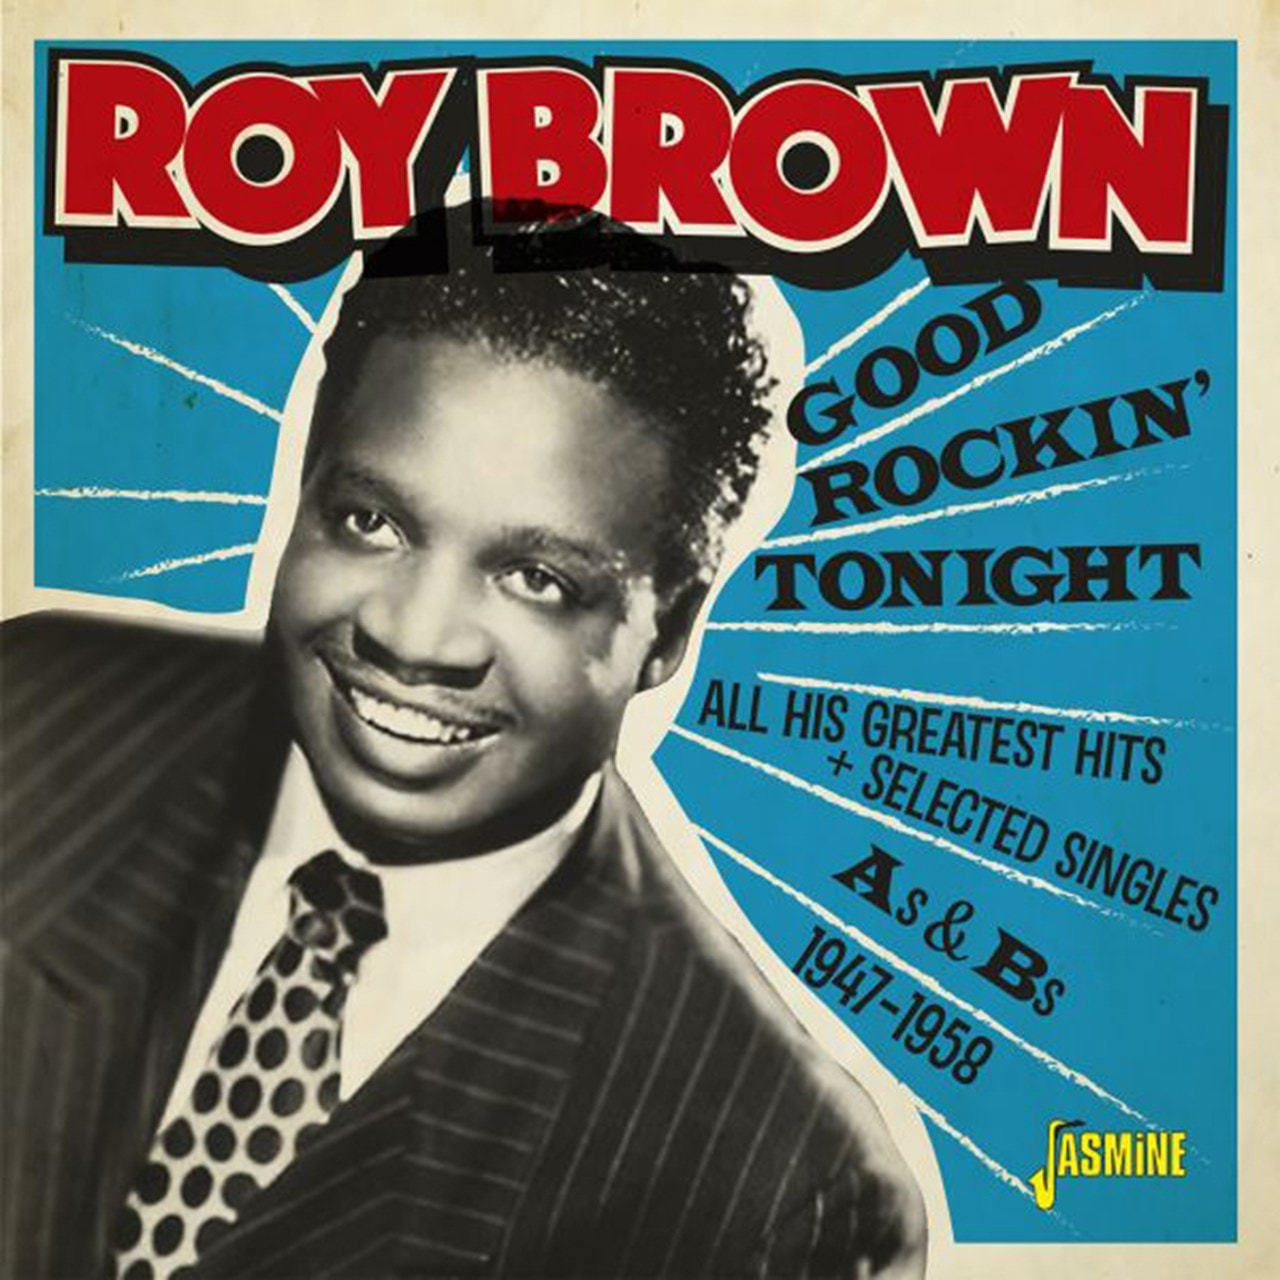 Good Rockin' Tonight: All His Greatest Hits + Selected Singles As & Bs 1947-1958 - 1